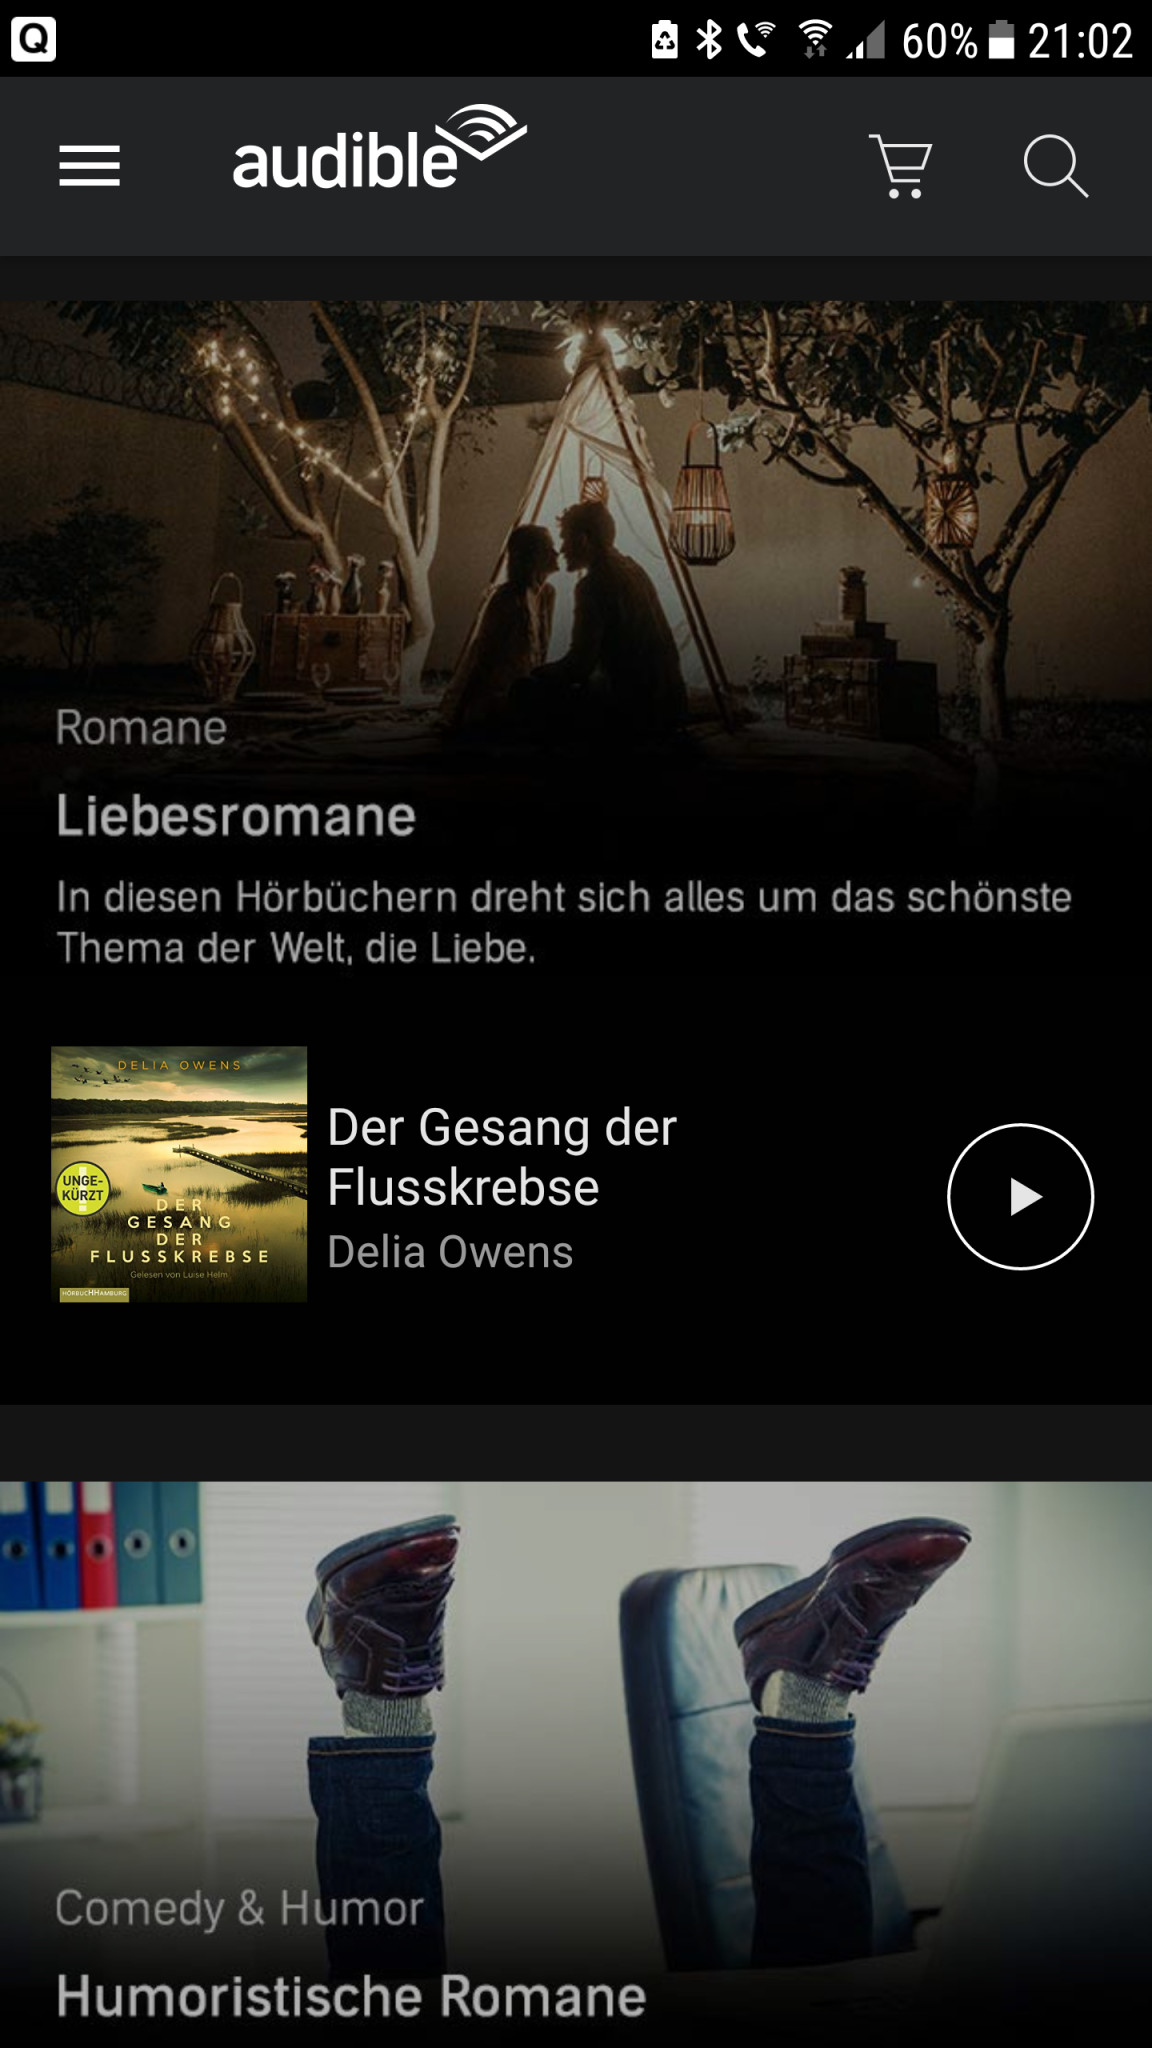 Screenshot 1 - Audible Hörbücher & Podcasts (Android-App)